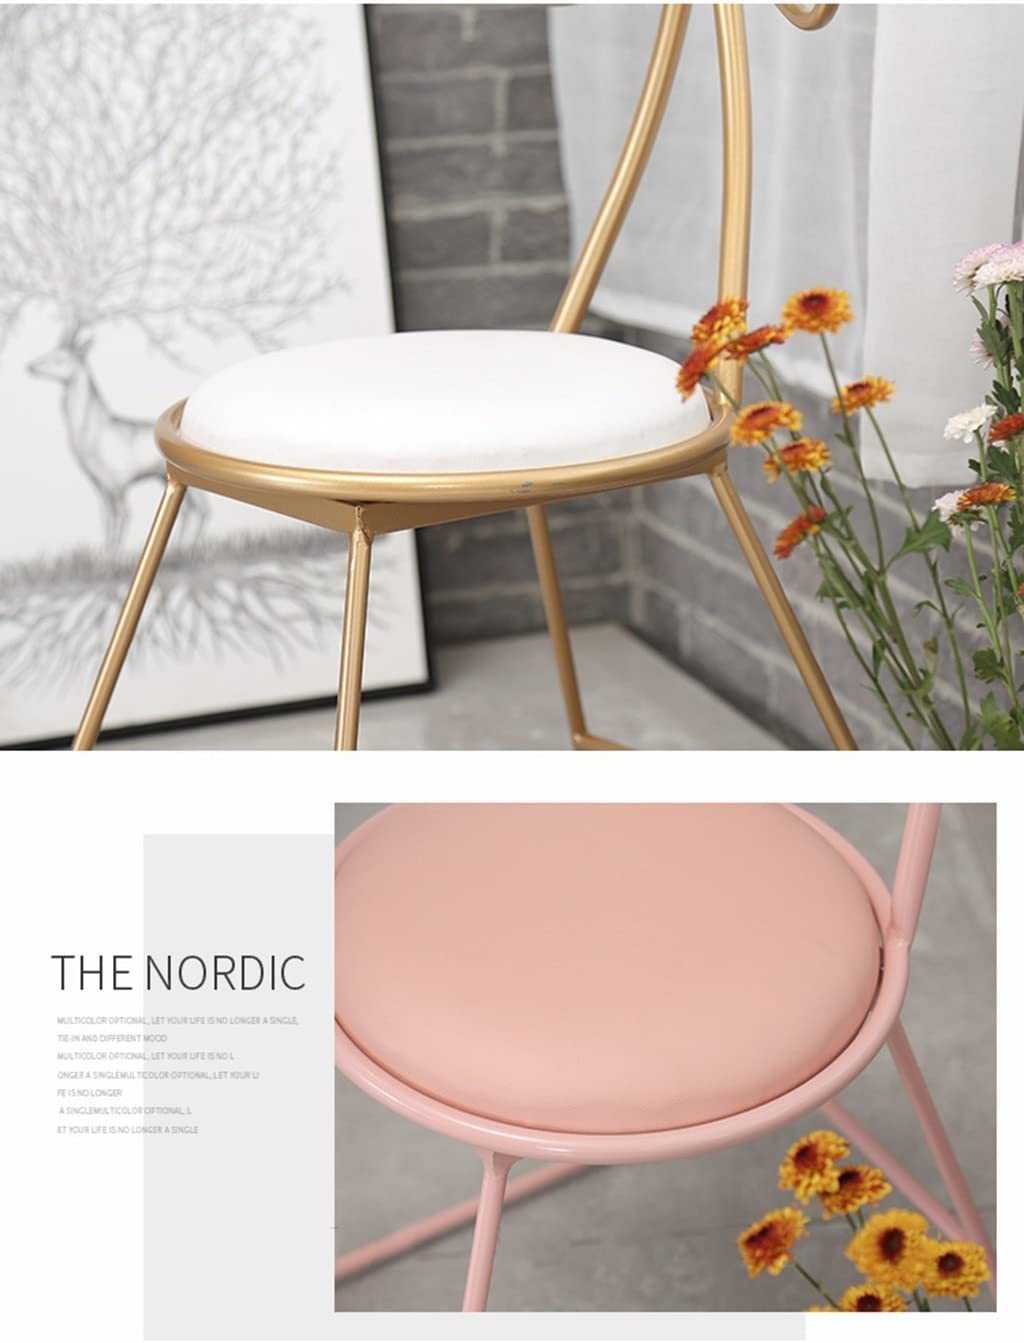 Iron Art Maquillage Chaise, Chambre Bow Chaise Restaurant Dossier Dressing Chaise Or Rose Nail Chair 38 * 48 * 82 CM (Couleur : Or) Blanc